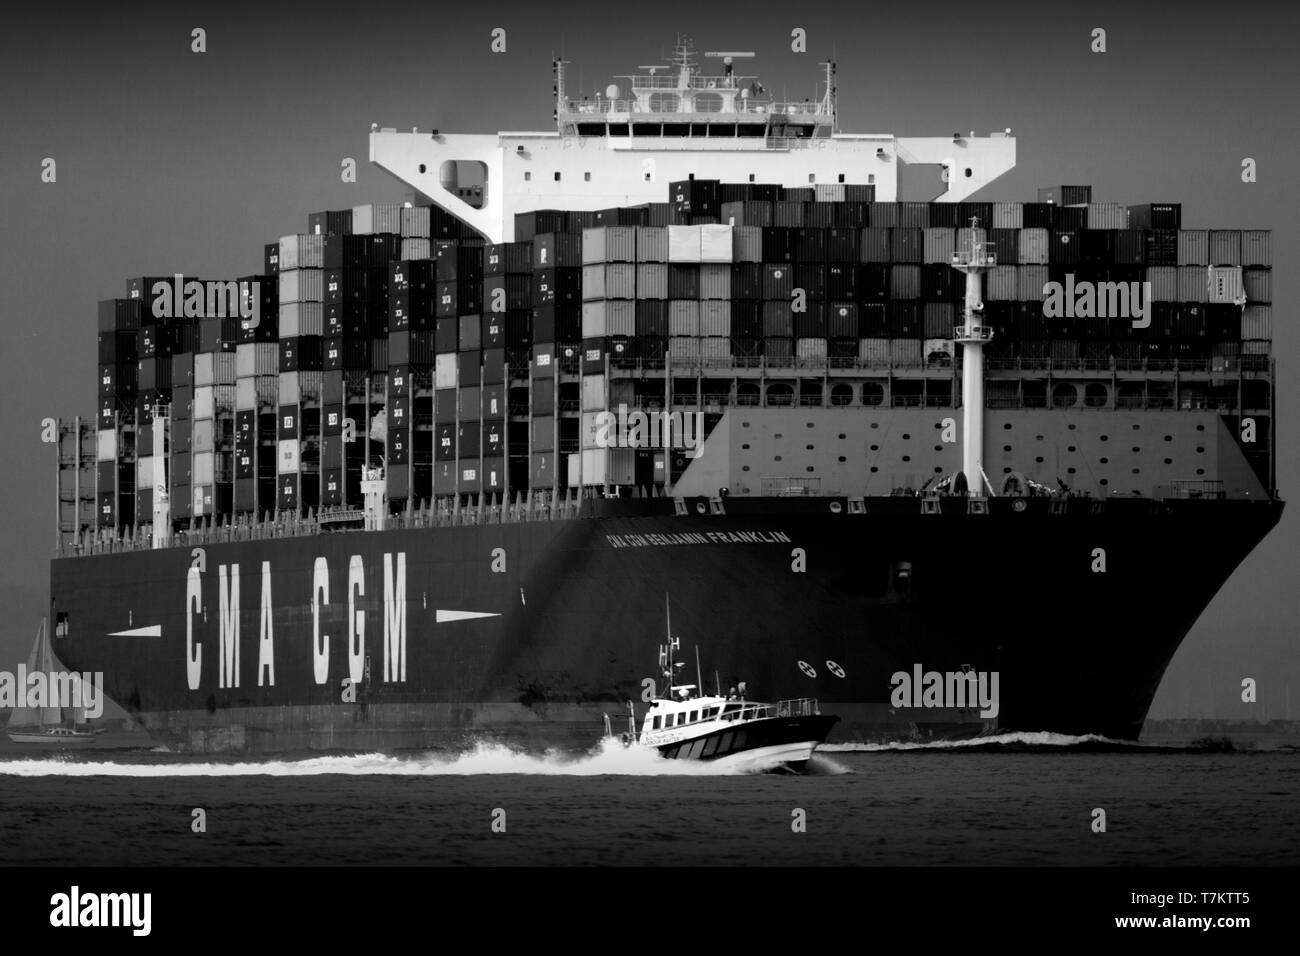 large,import,services,shipping,agent,port,harbour,master,launch,escort,pilot,Container,Ship,Southampton,Terminal,The Solent,China,Europe,import,trade, - Stock Image